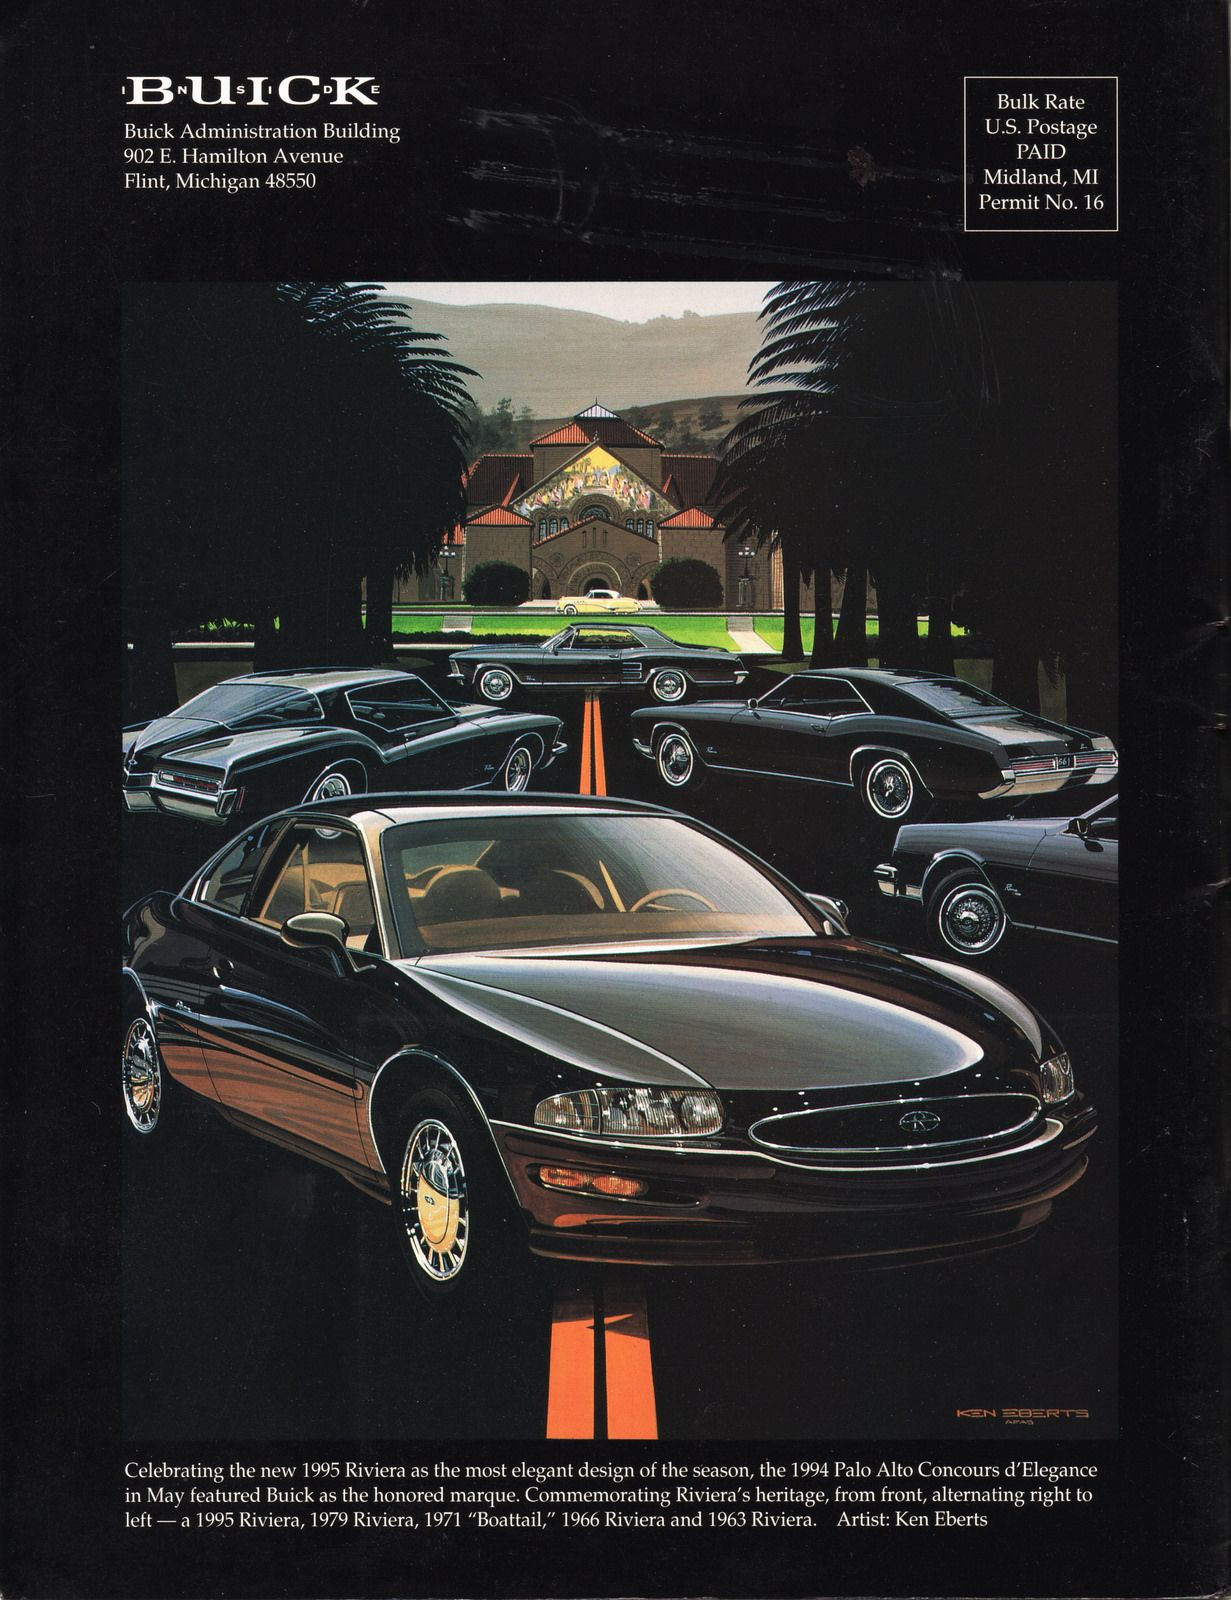 1995 buick riviera and historic rivieras wouldn t you really rh pinterest com 2005 Buick Riviera 2005 Buick Riviera